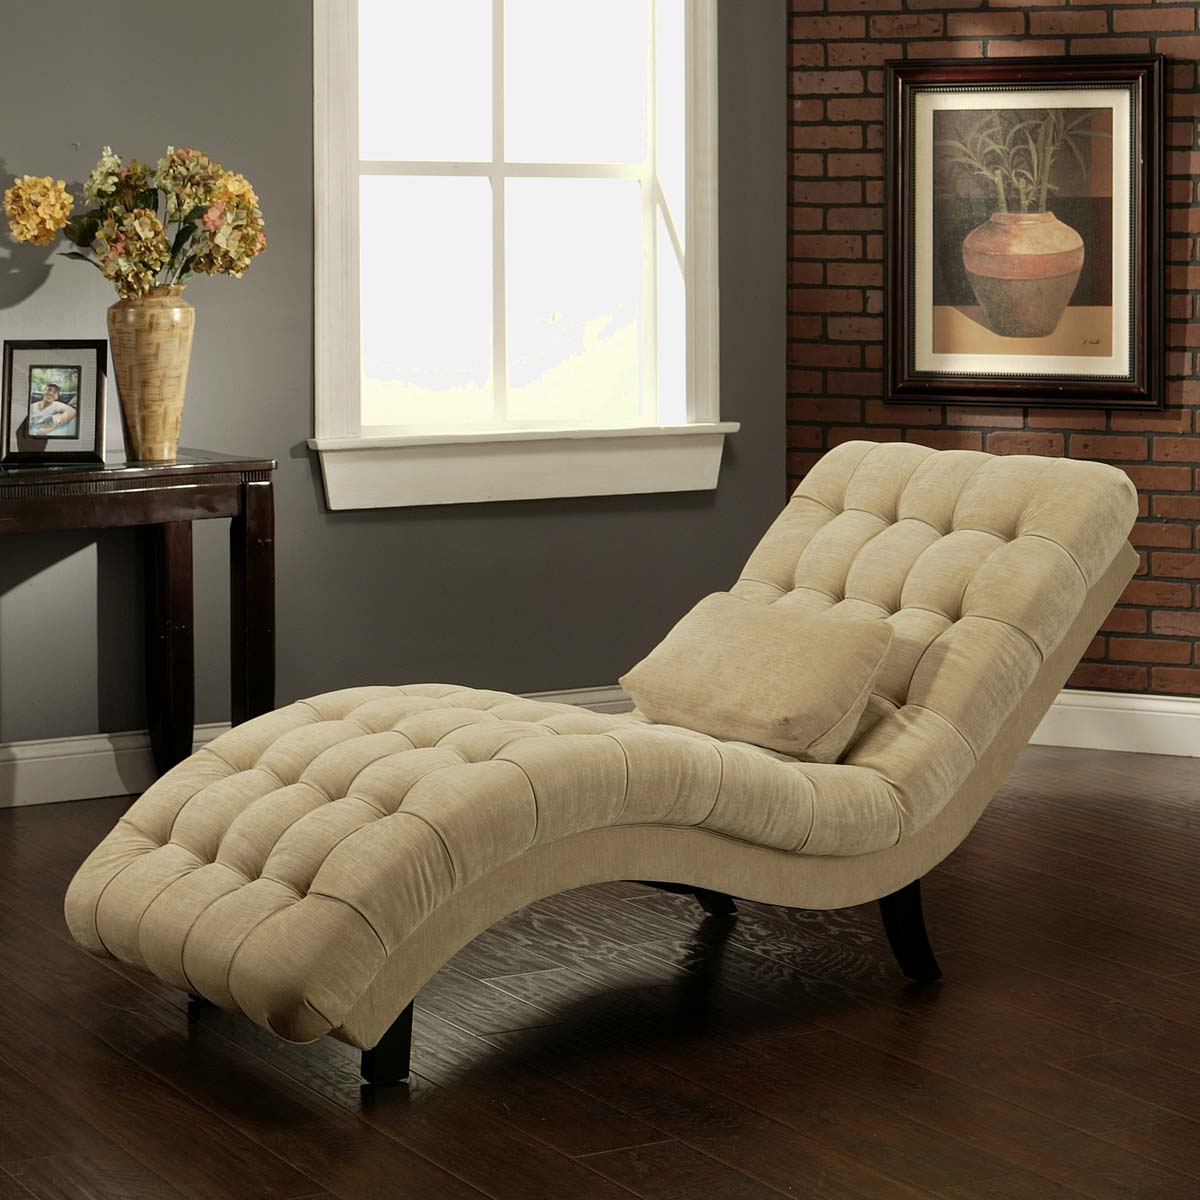 abbyson living soho cream fabric chaise ab hs sf 250 bge